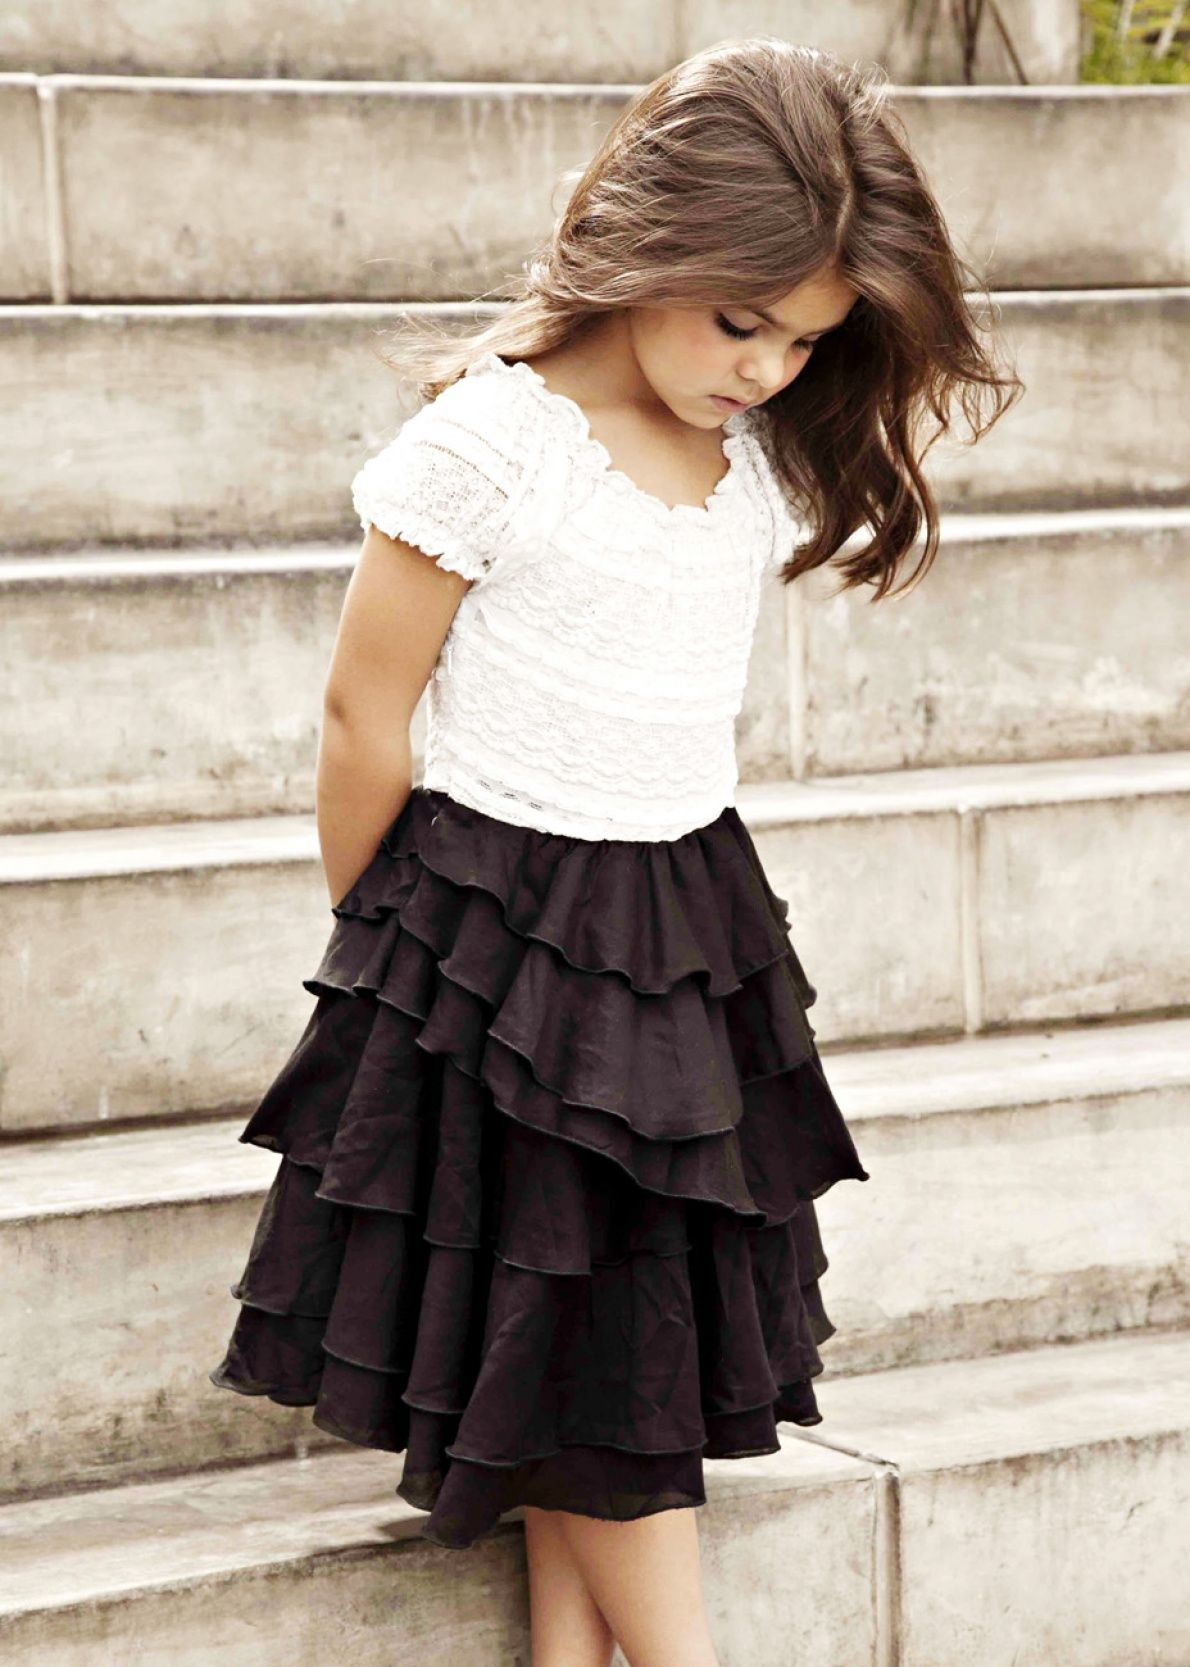 013bb9665 beautiful little girl and such a cute modest outfit for little girls ...